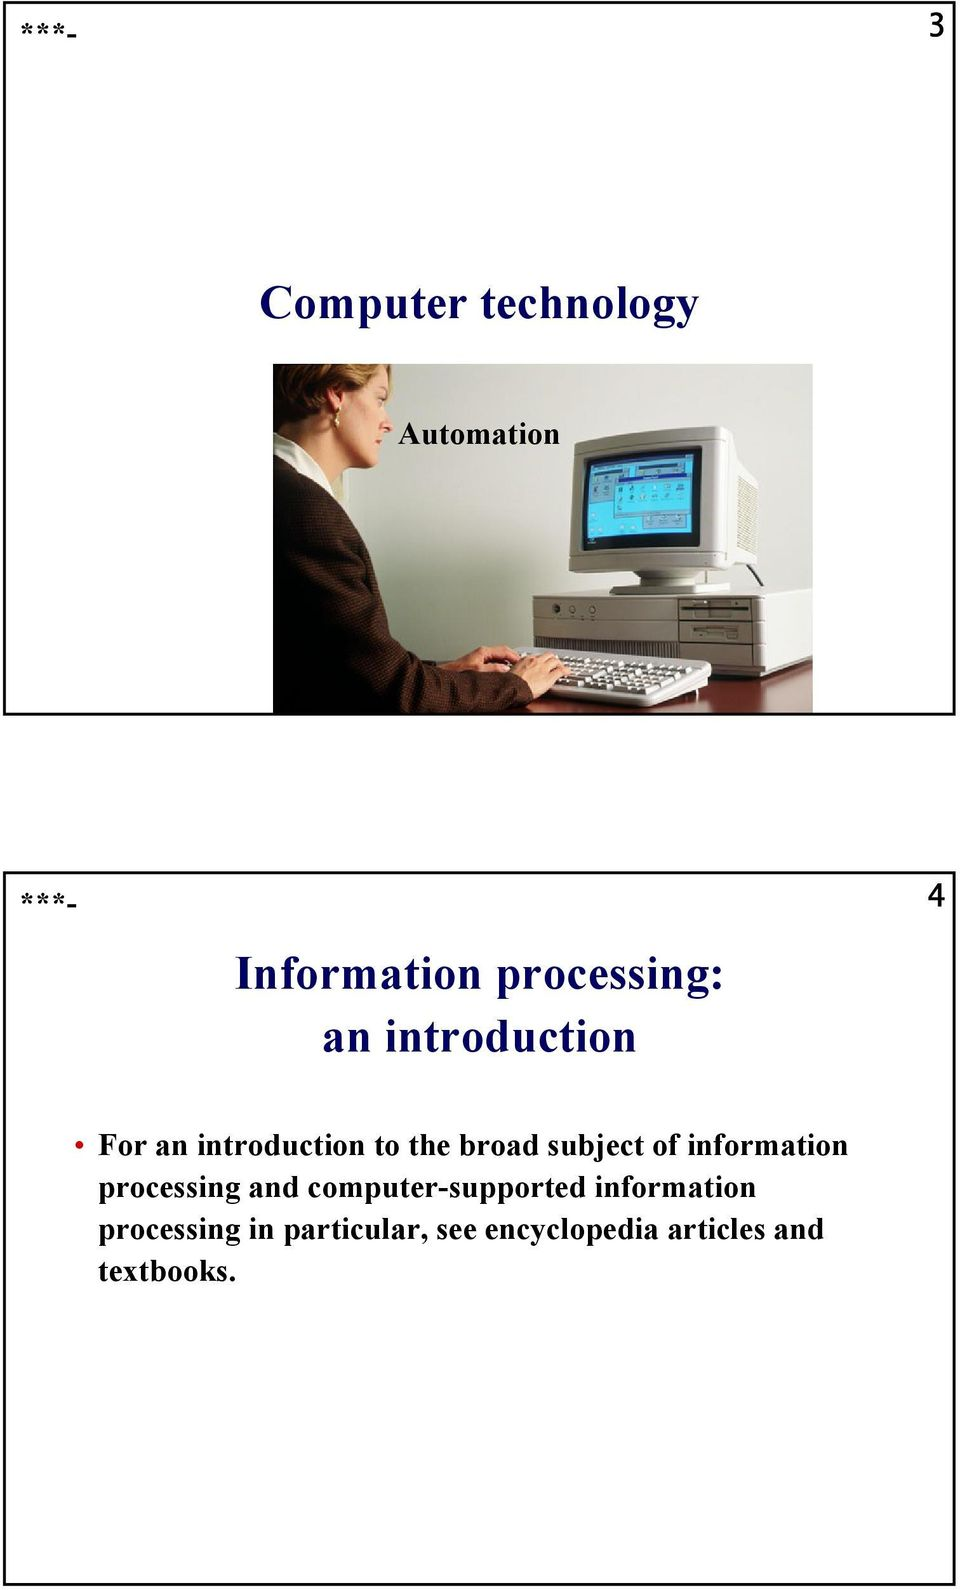 information processing and computer-supported information